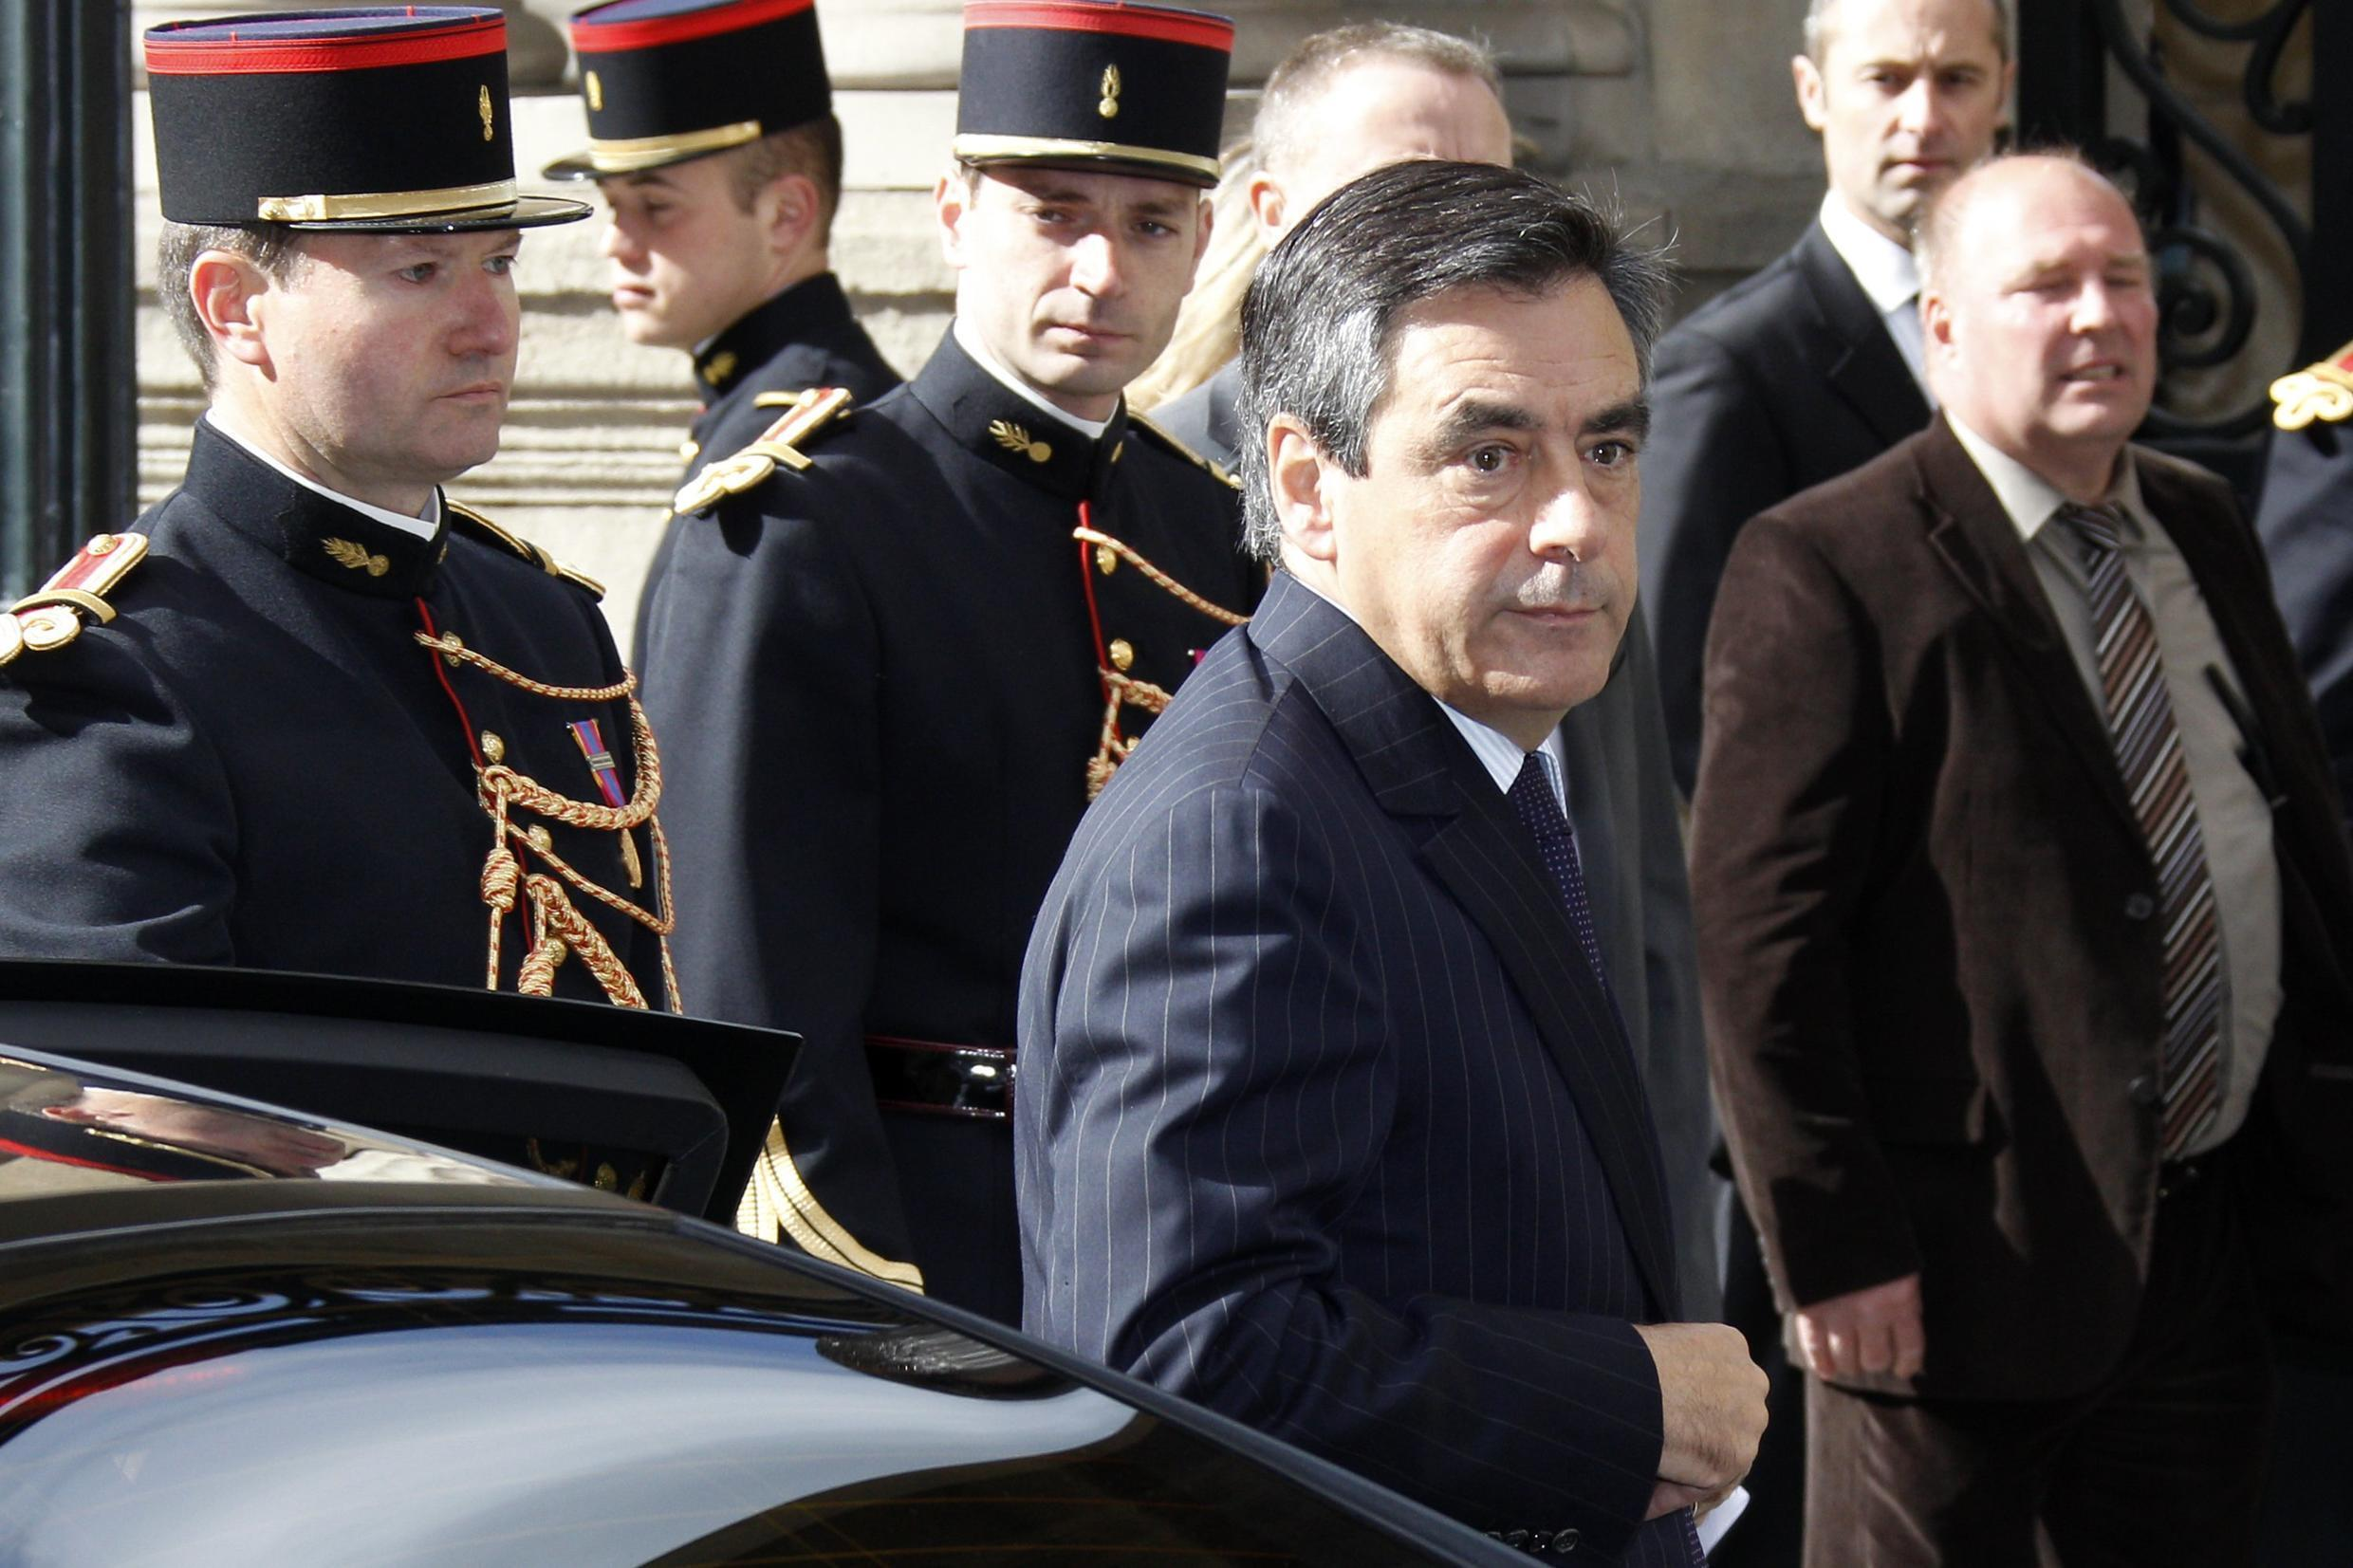 François Fillon prepares to hand over power to his Socialist successor Jean-Marc Ayrault